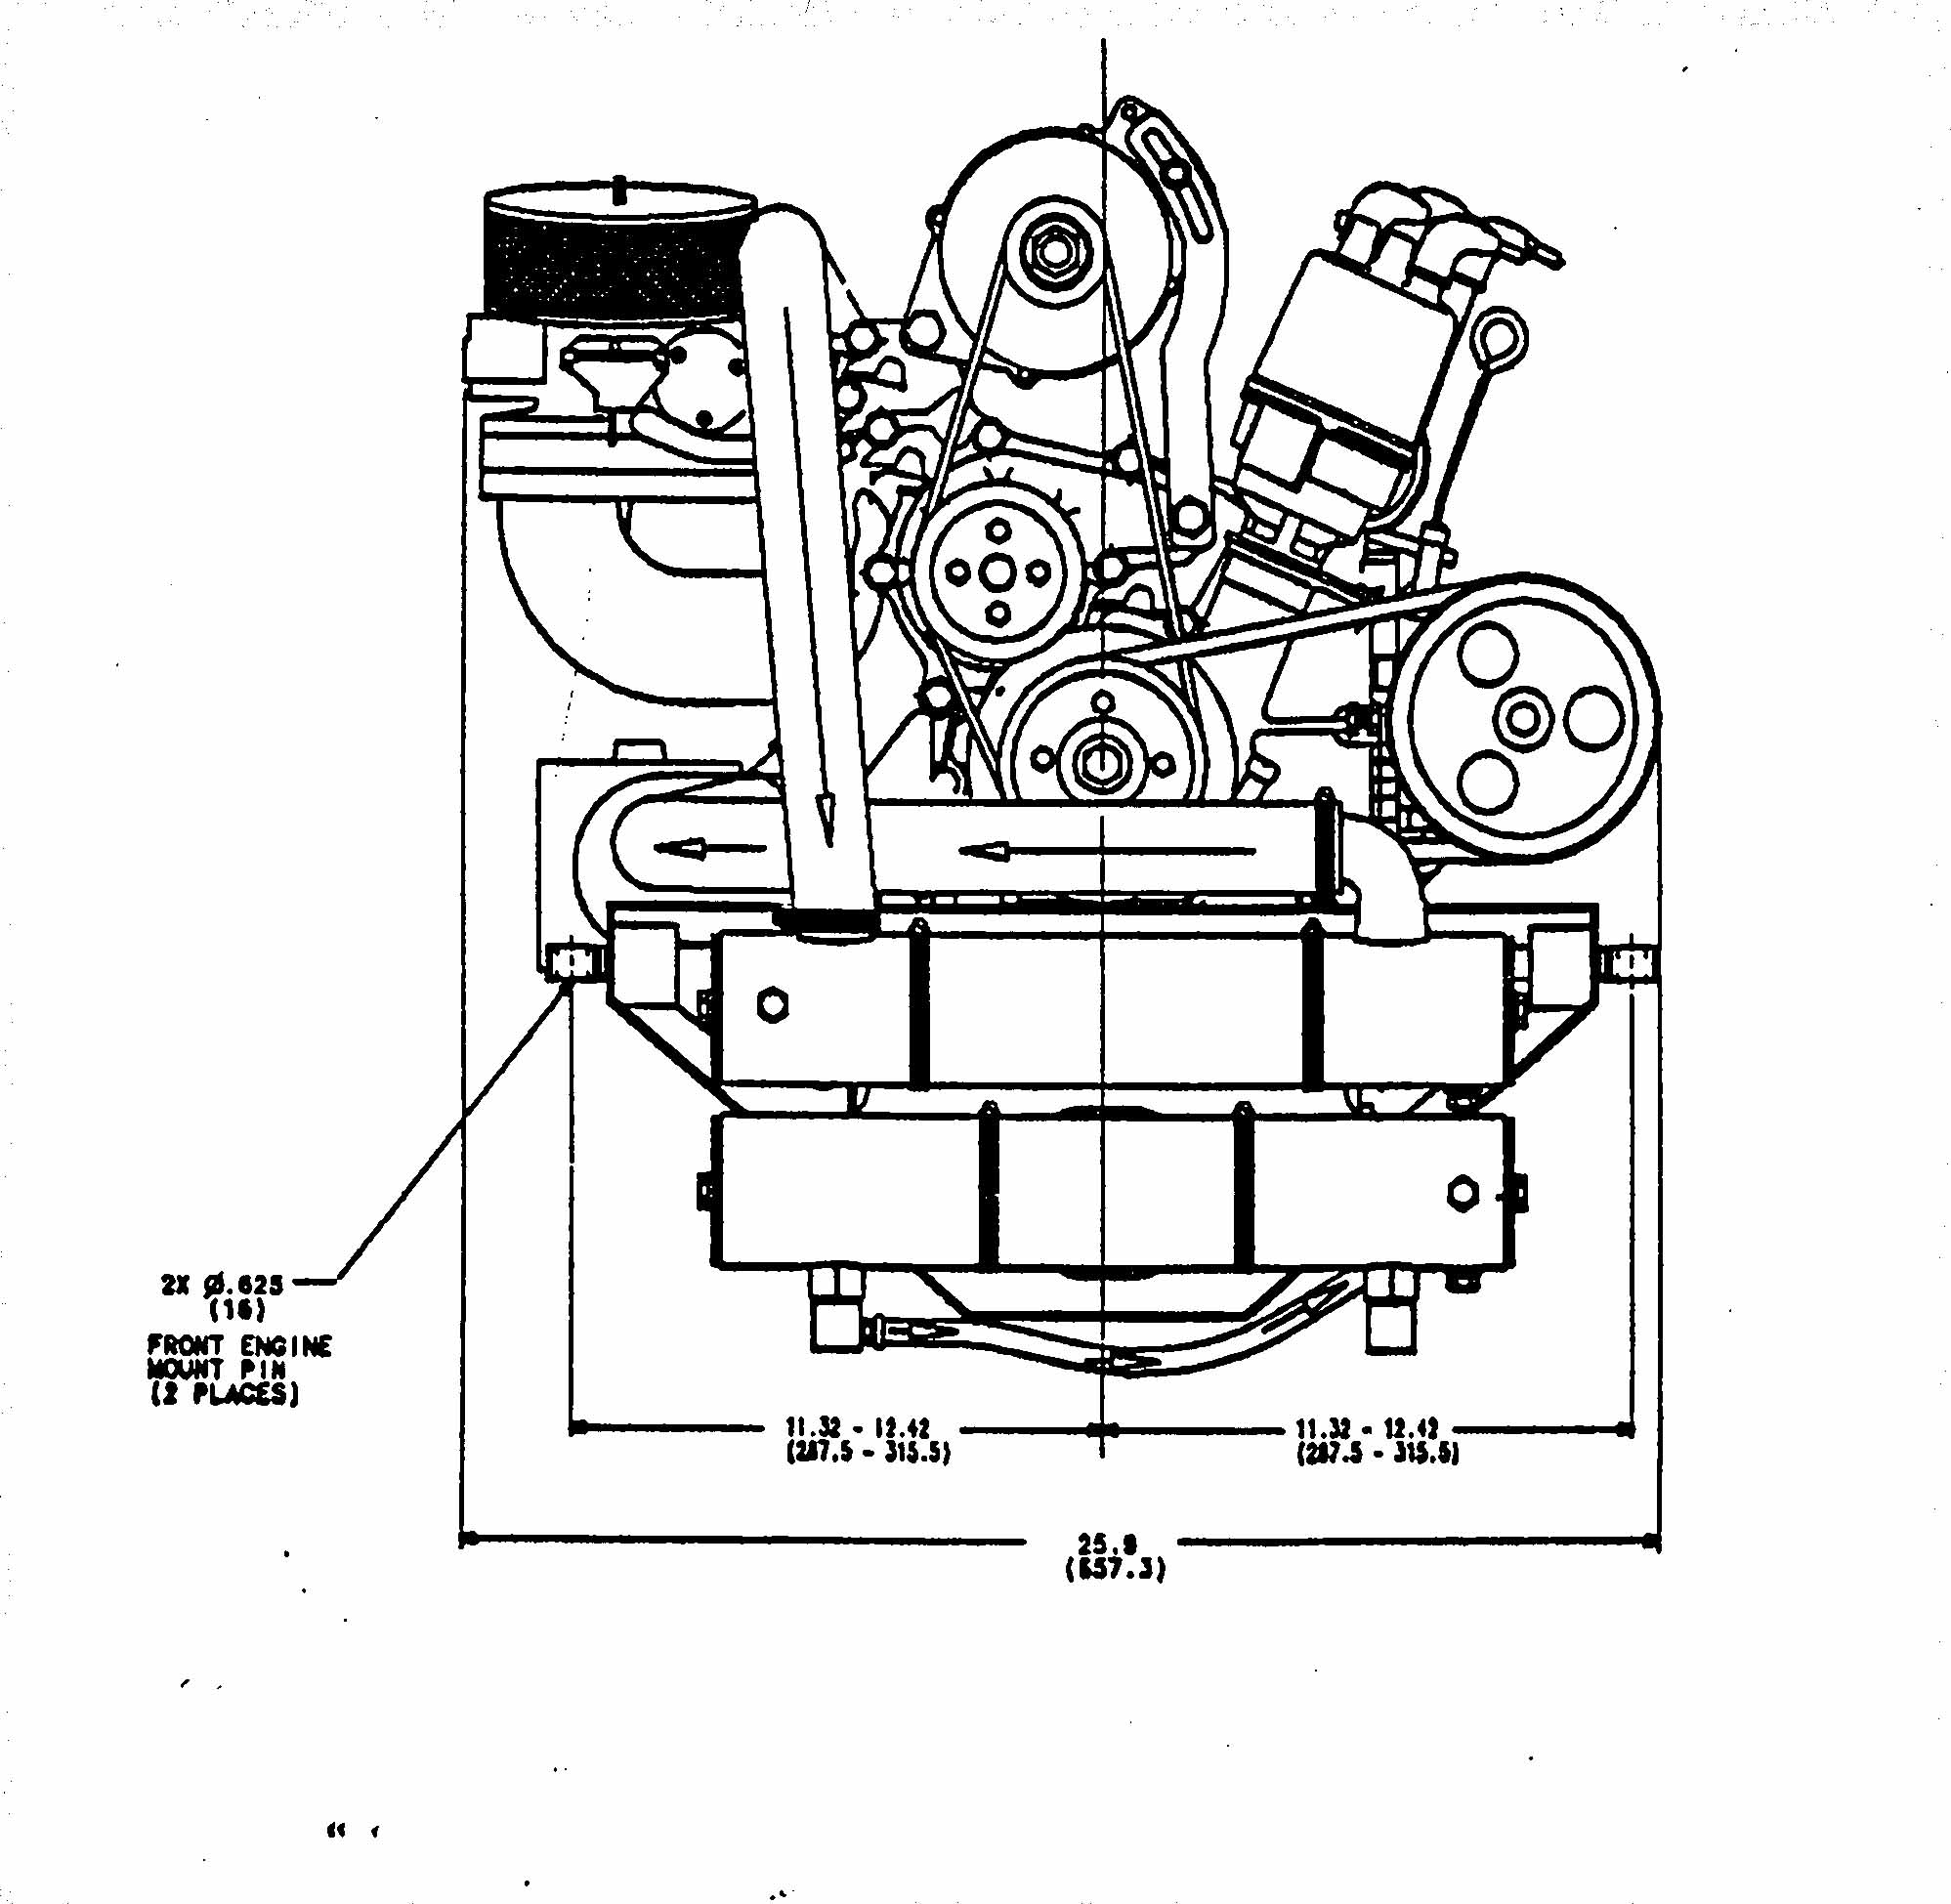 hight resolution of rx7 13b engine diagram content resource of wiring diagram u2022 small engine fuel line diagram